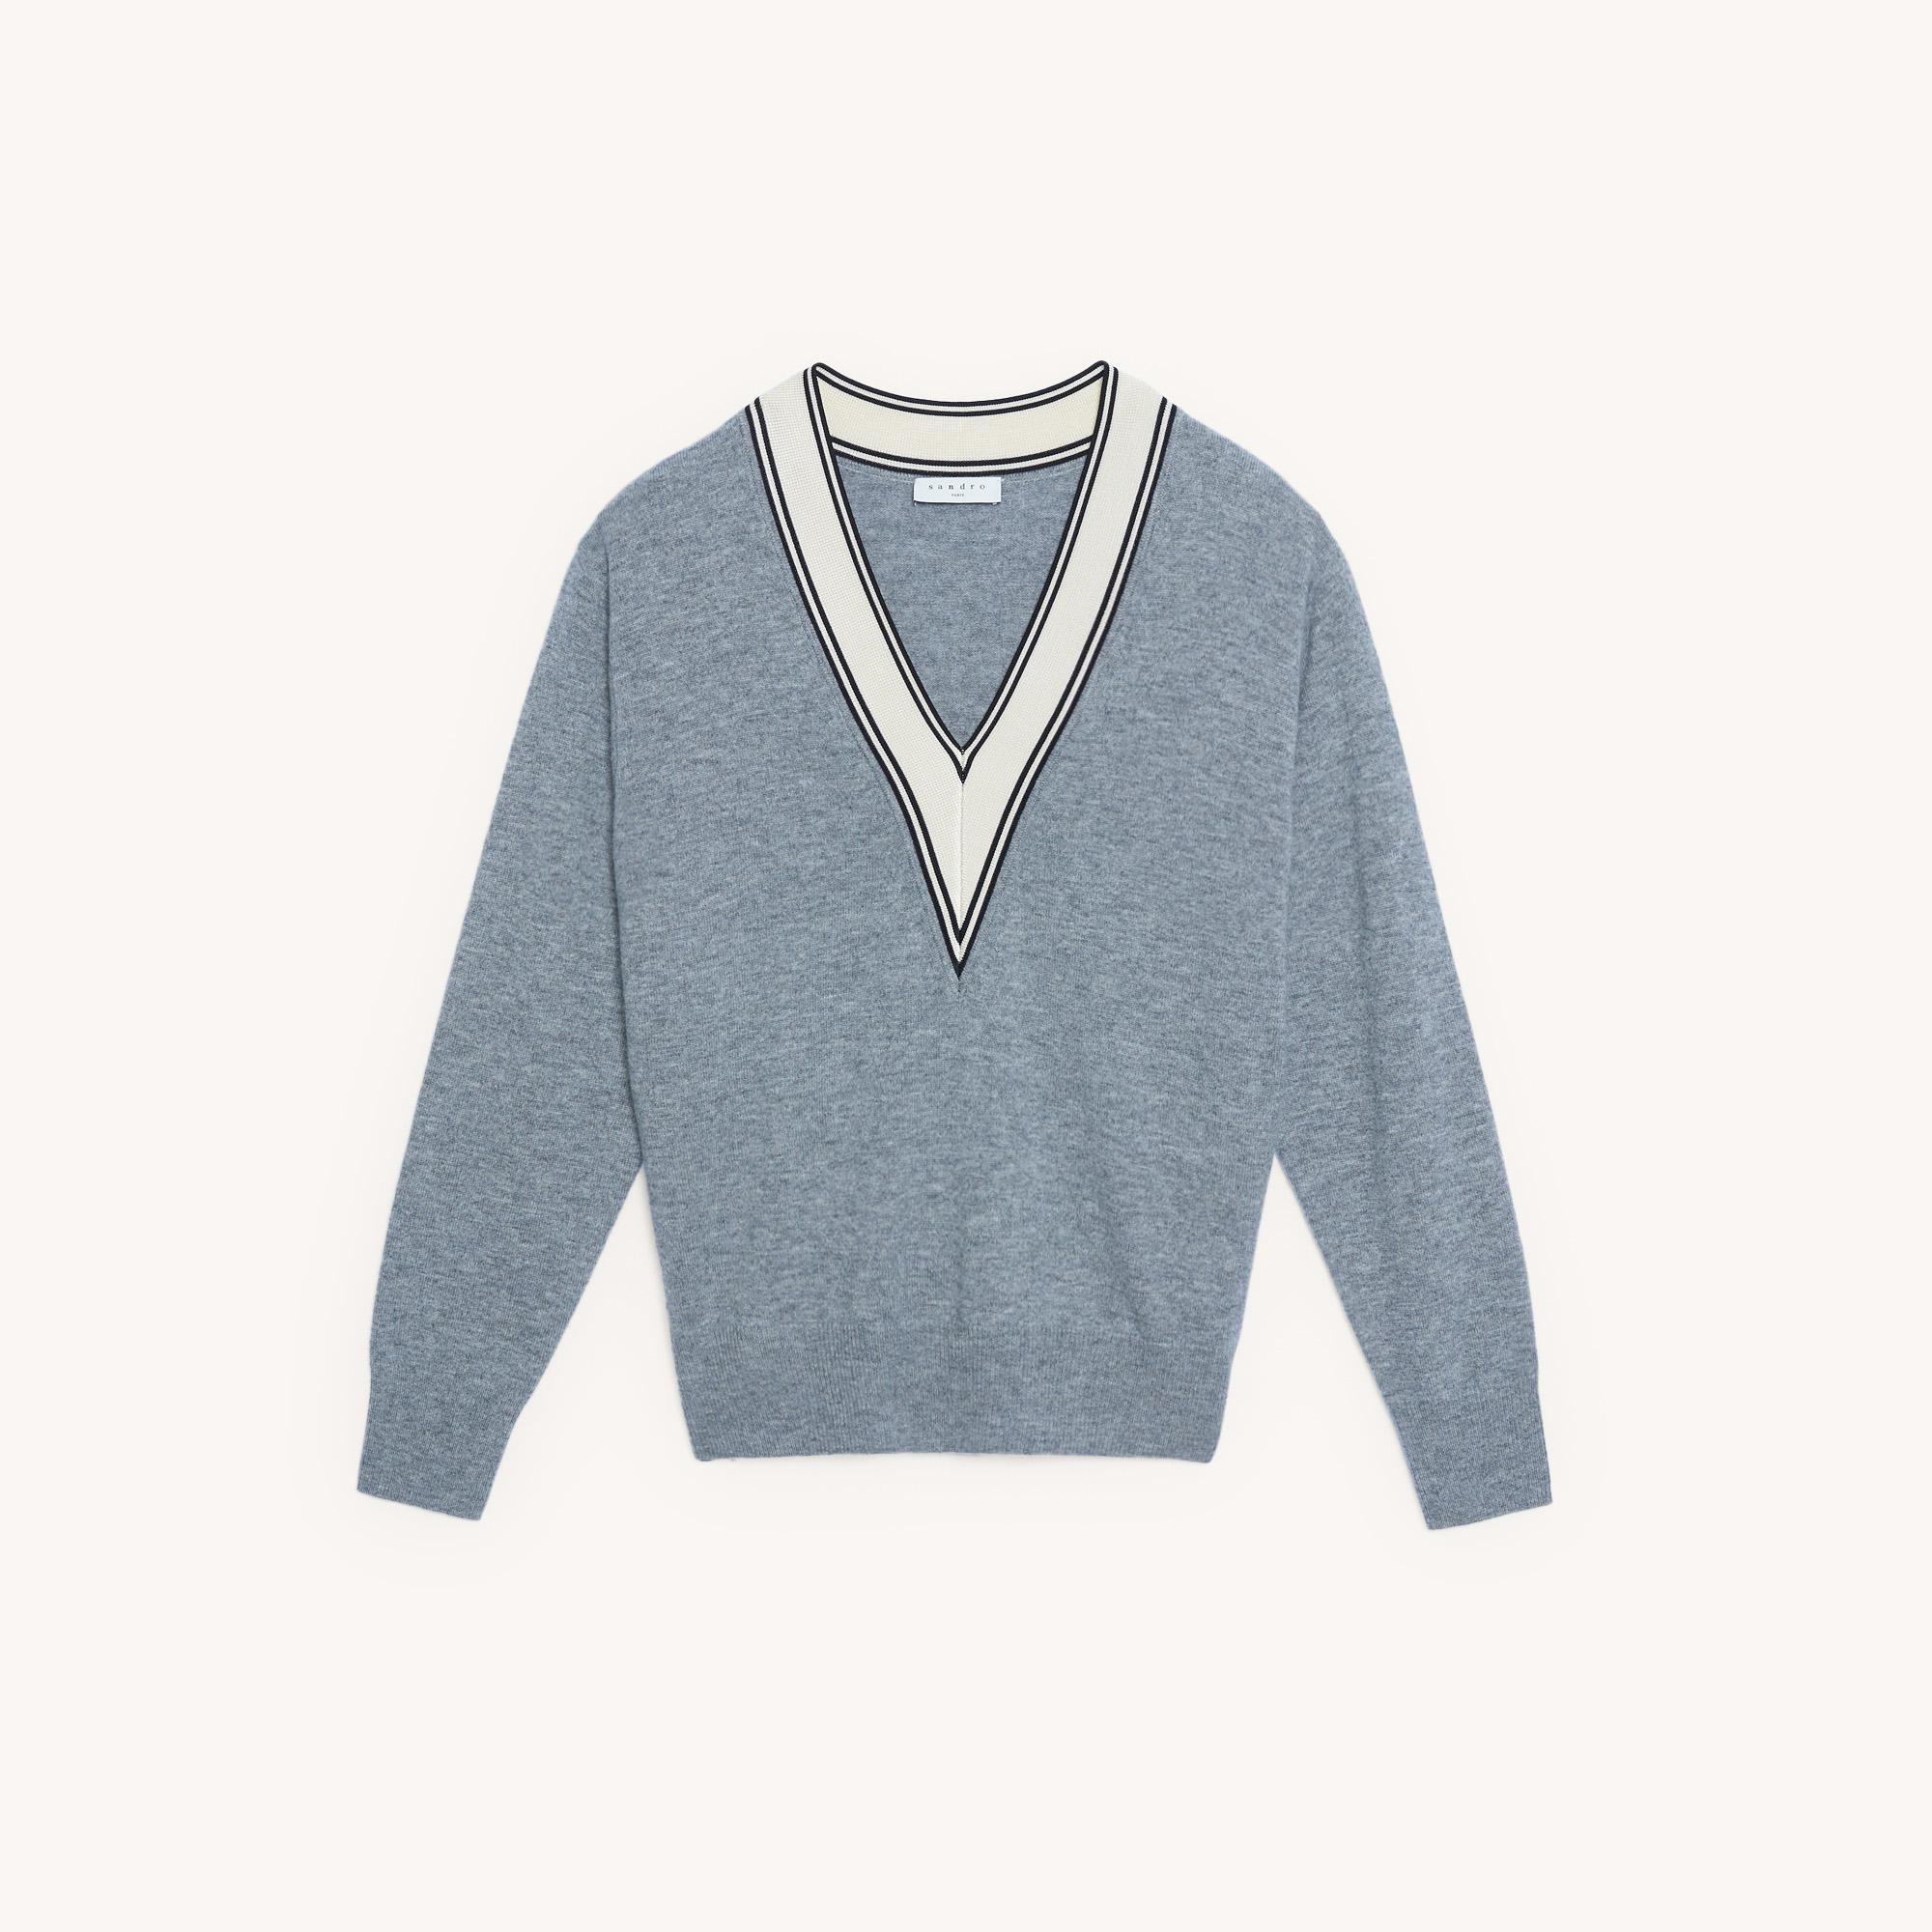 Sweater with constrasting neckline